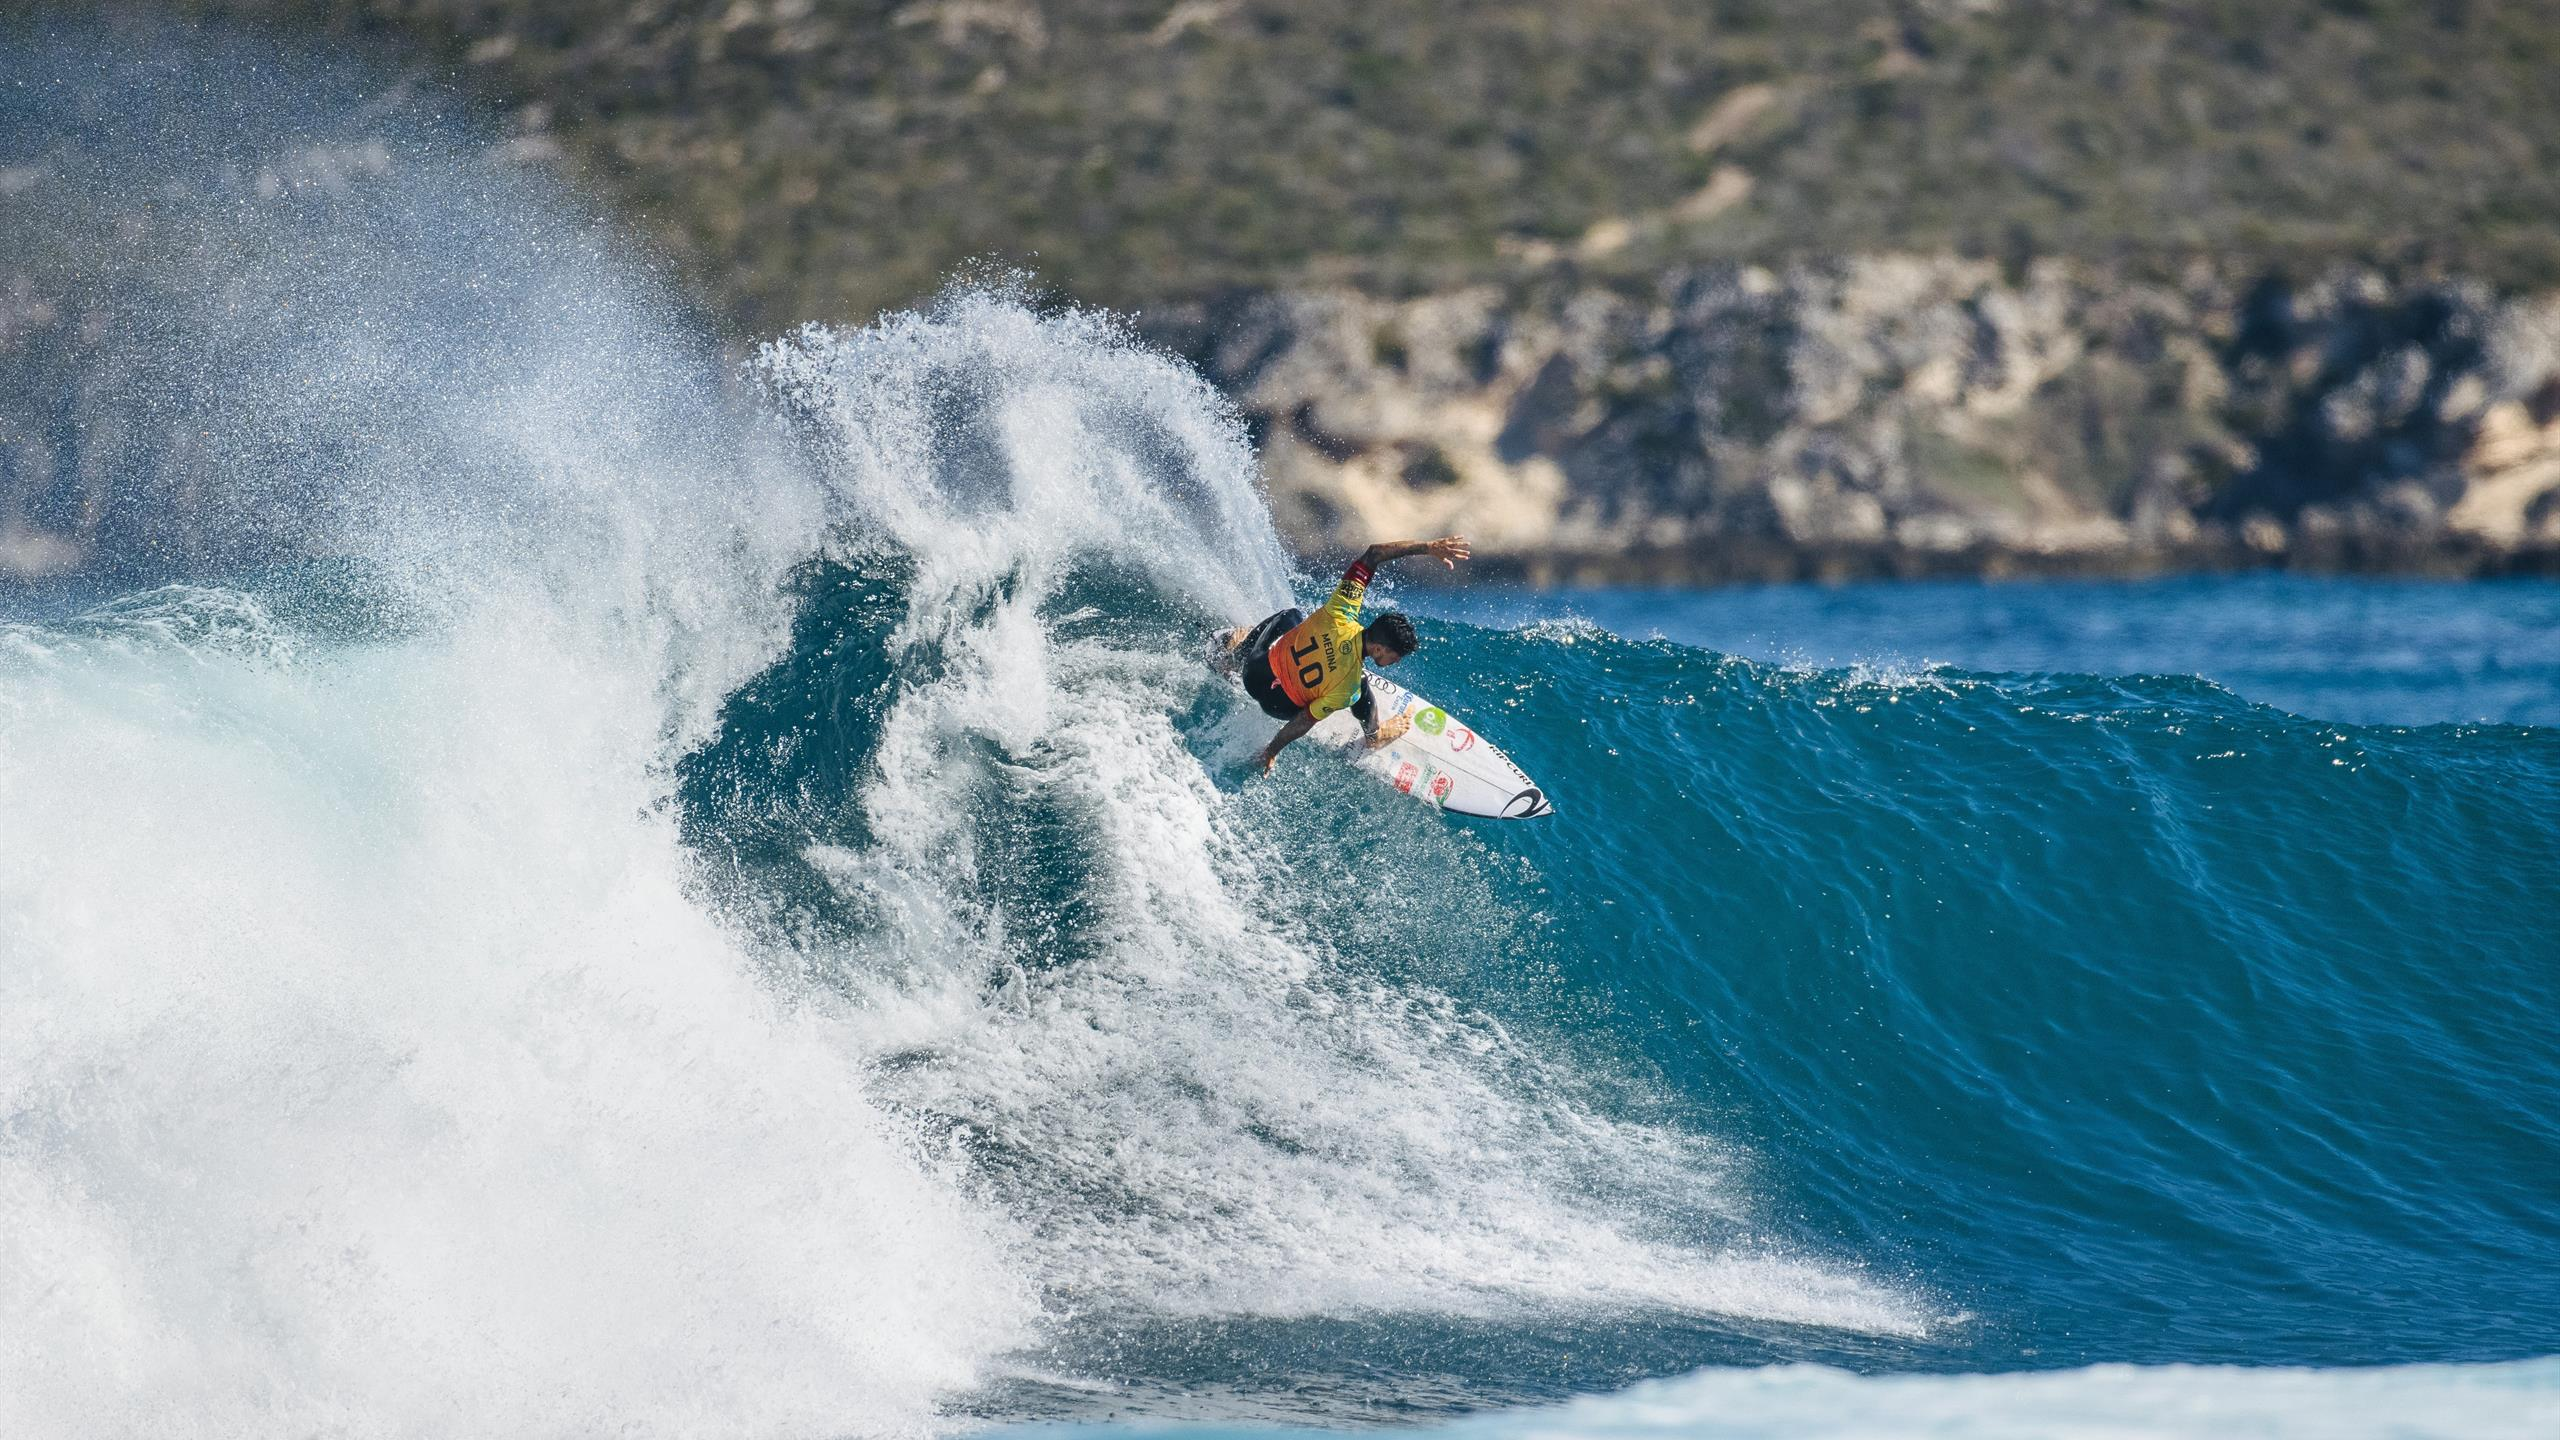 Tokyo Olympics 2020 |  What to watch out for when surfing at the Olympics